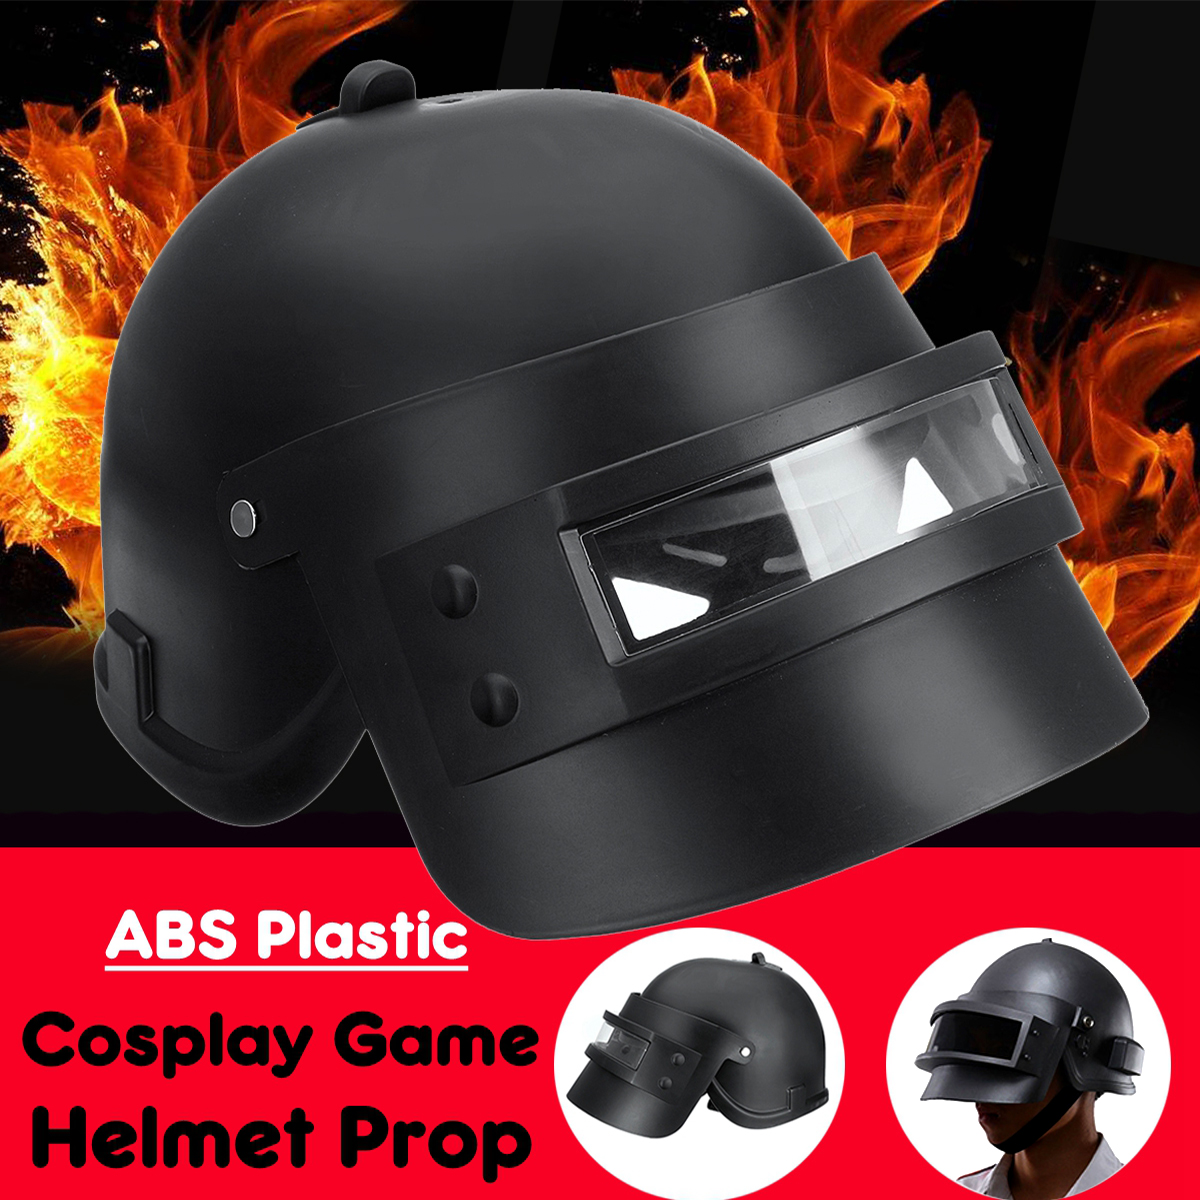 Game Cosplay Mask Level 3 Props Cap Helmet Black Halloween Christmas Player